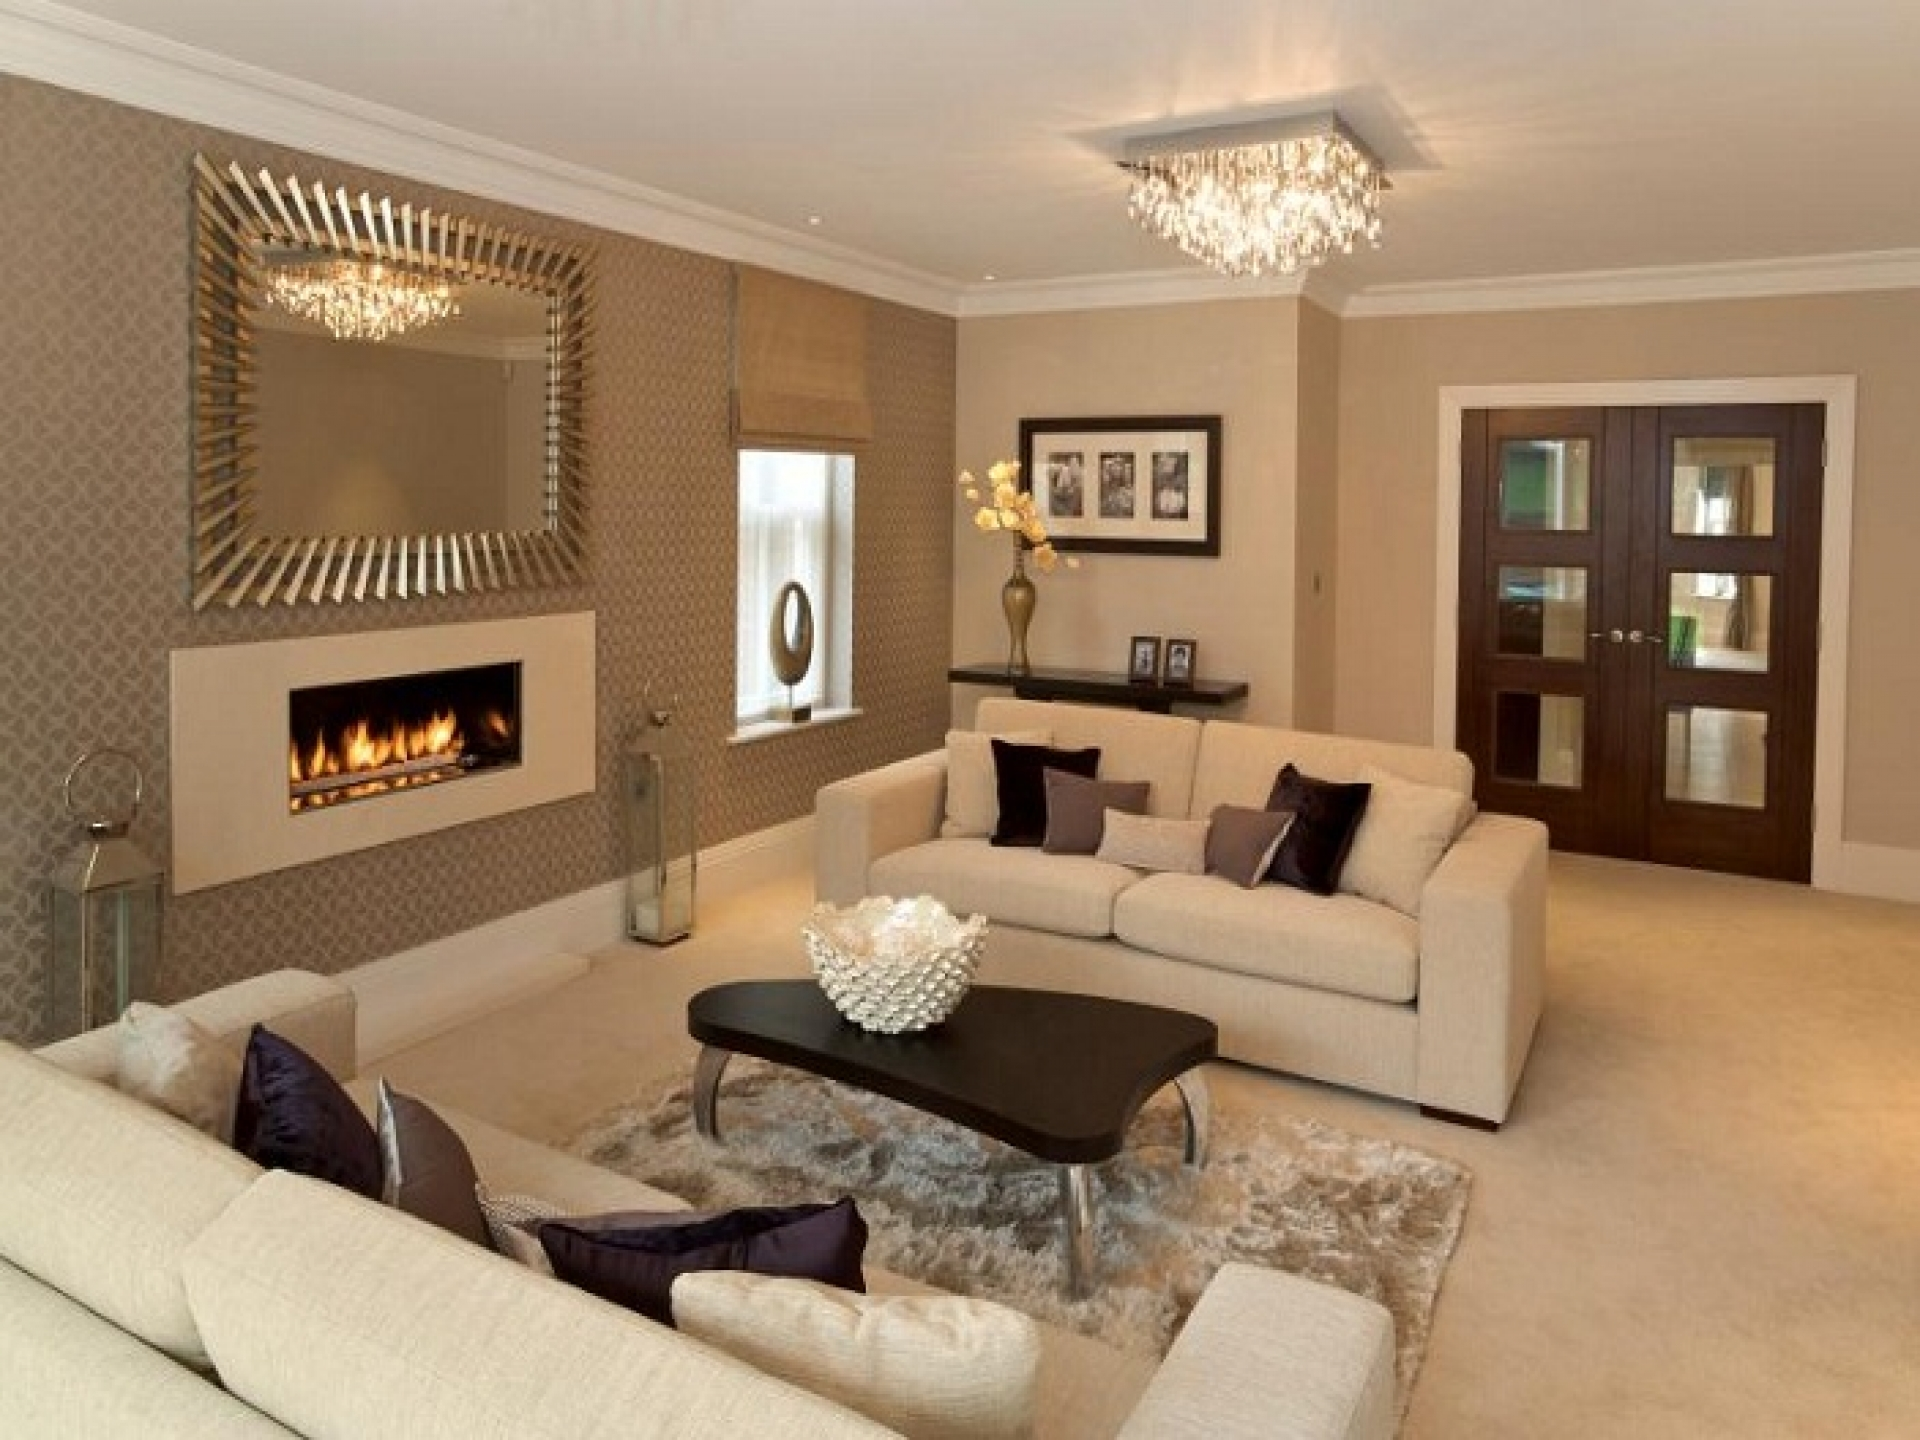 15 exclusive living room ideas for the perfect home for White living room furniture ideas